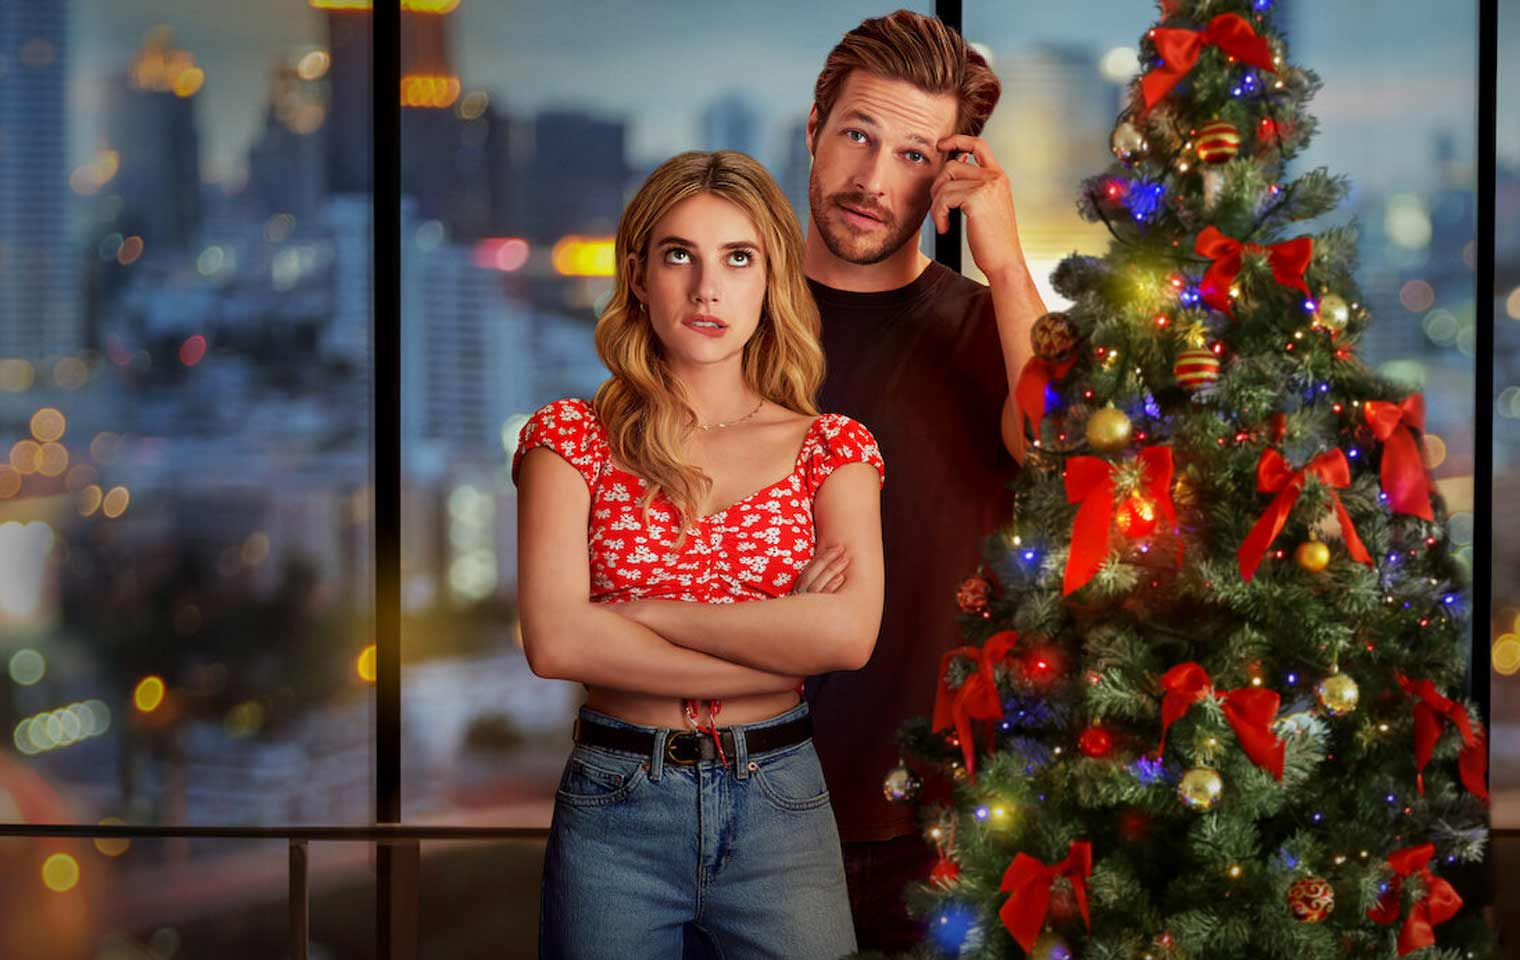 Emma Roberts and Luke Bracey in the Holidate poster